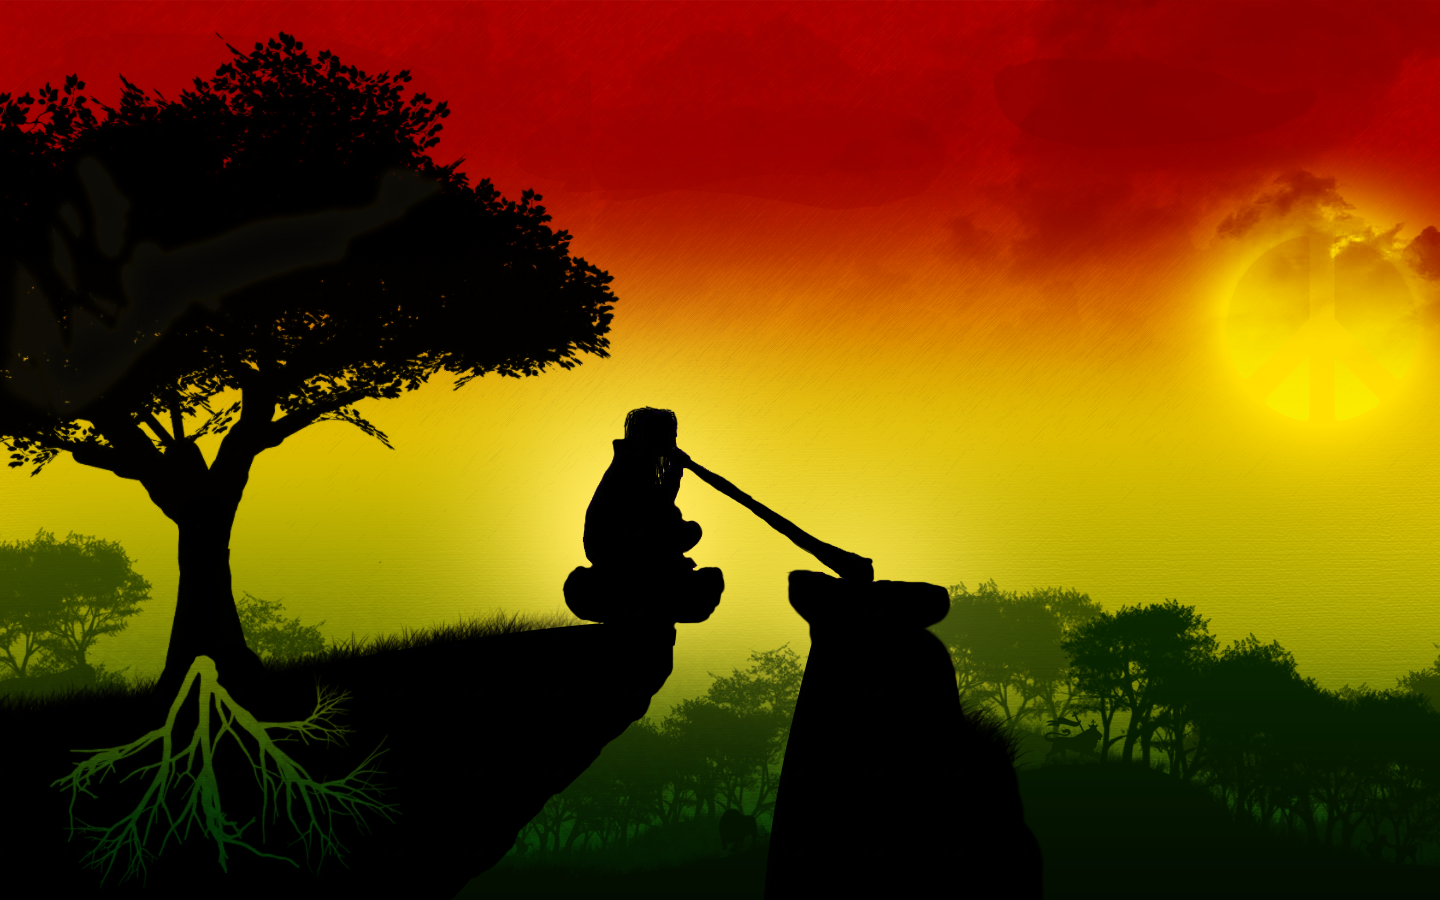 Wallpaper iphone rasta - Rasta Lion Wallpaper 1440 900 High Definition Wallpaper